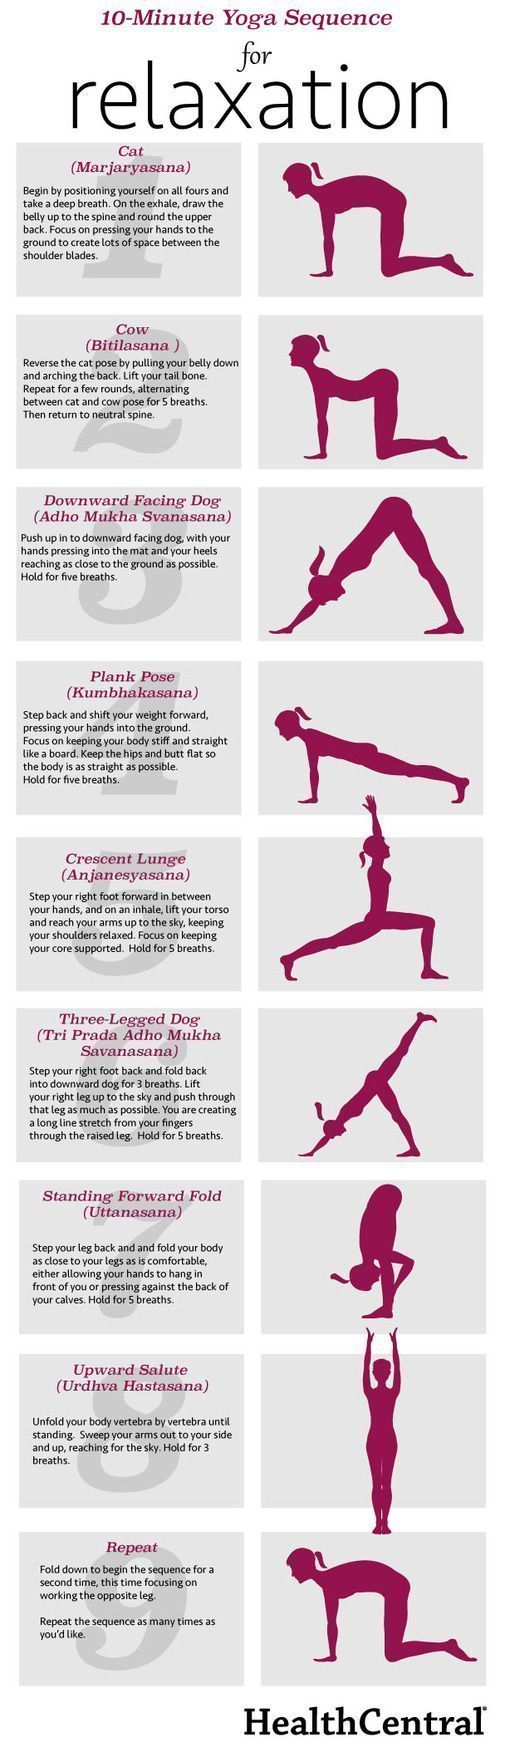 DownDog Diary Yoga Keeps you Young: 10-Minute Yoga Sequence for Relaxation